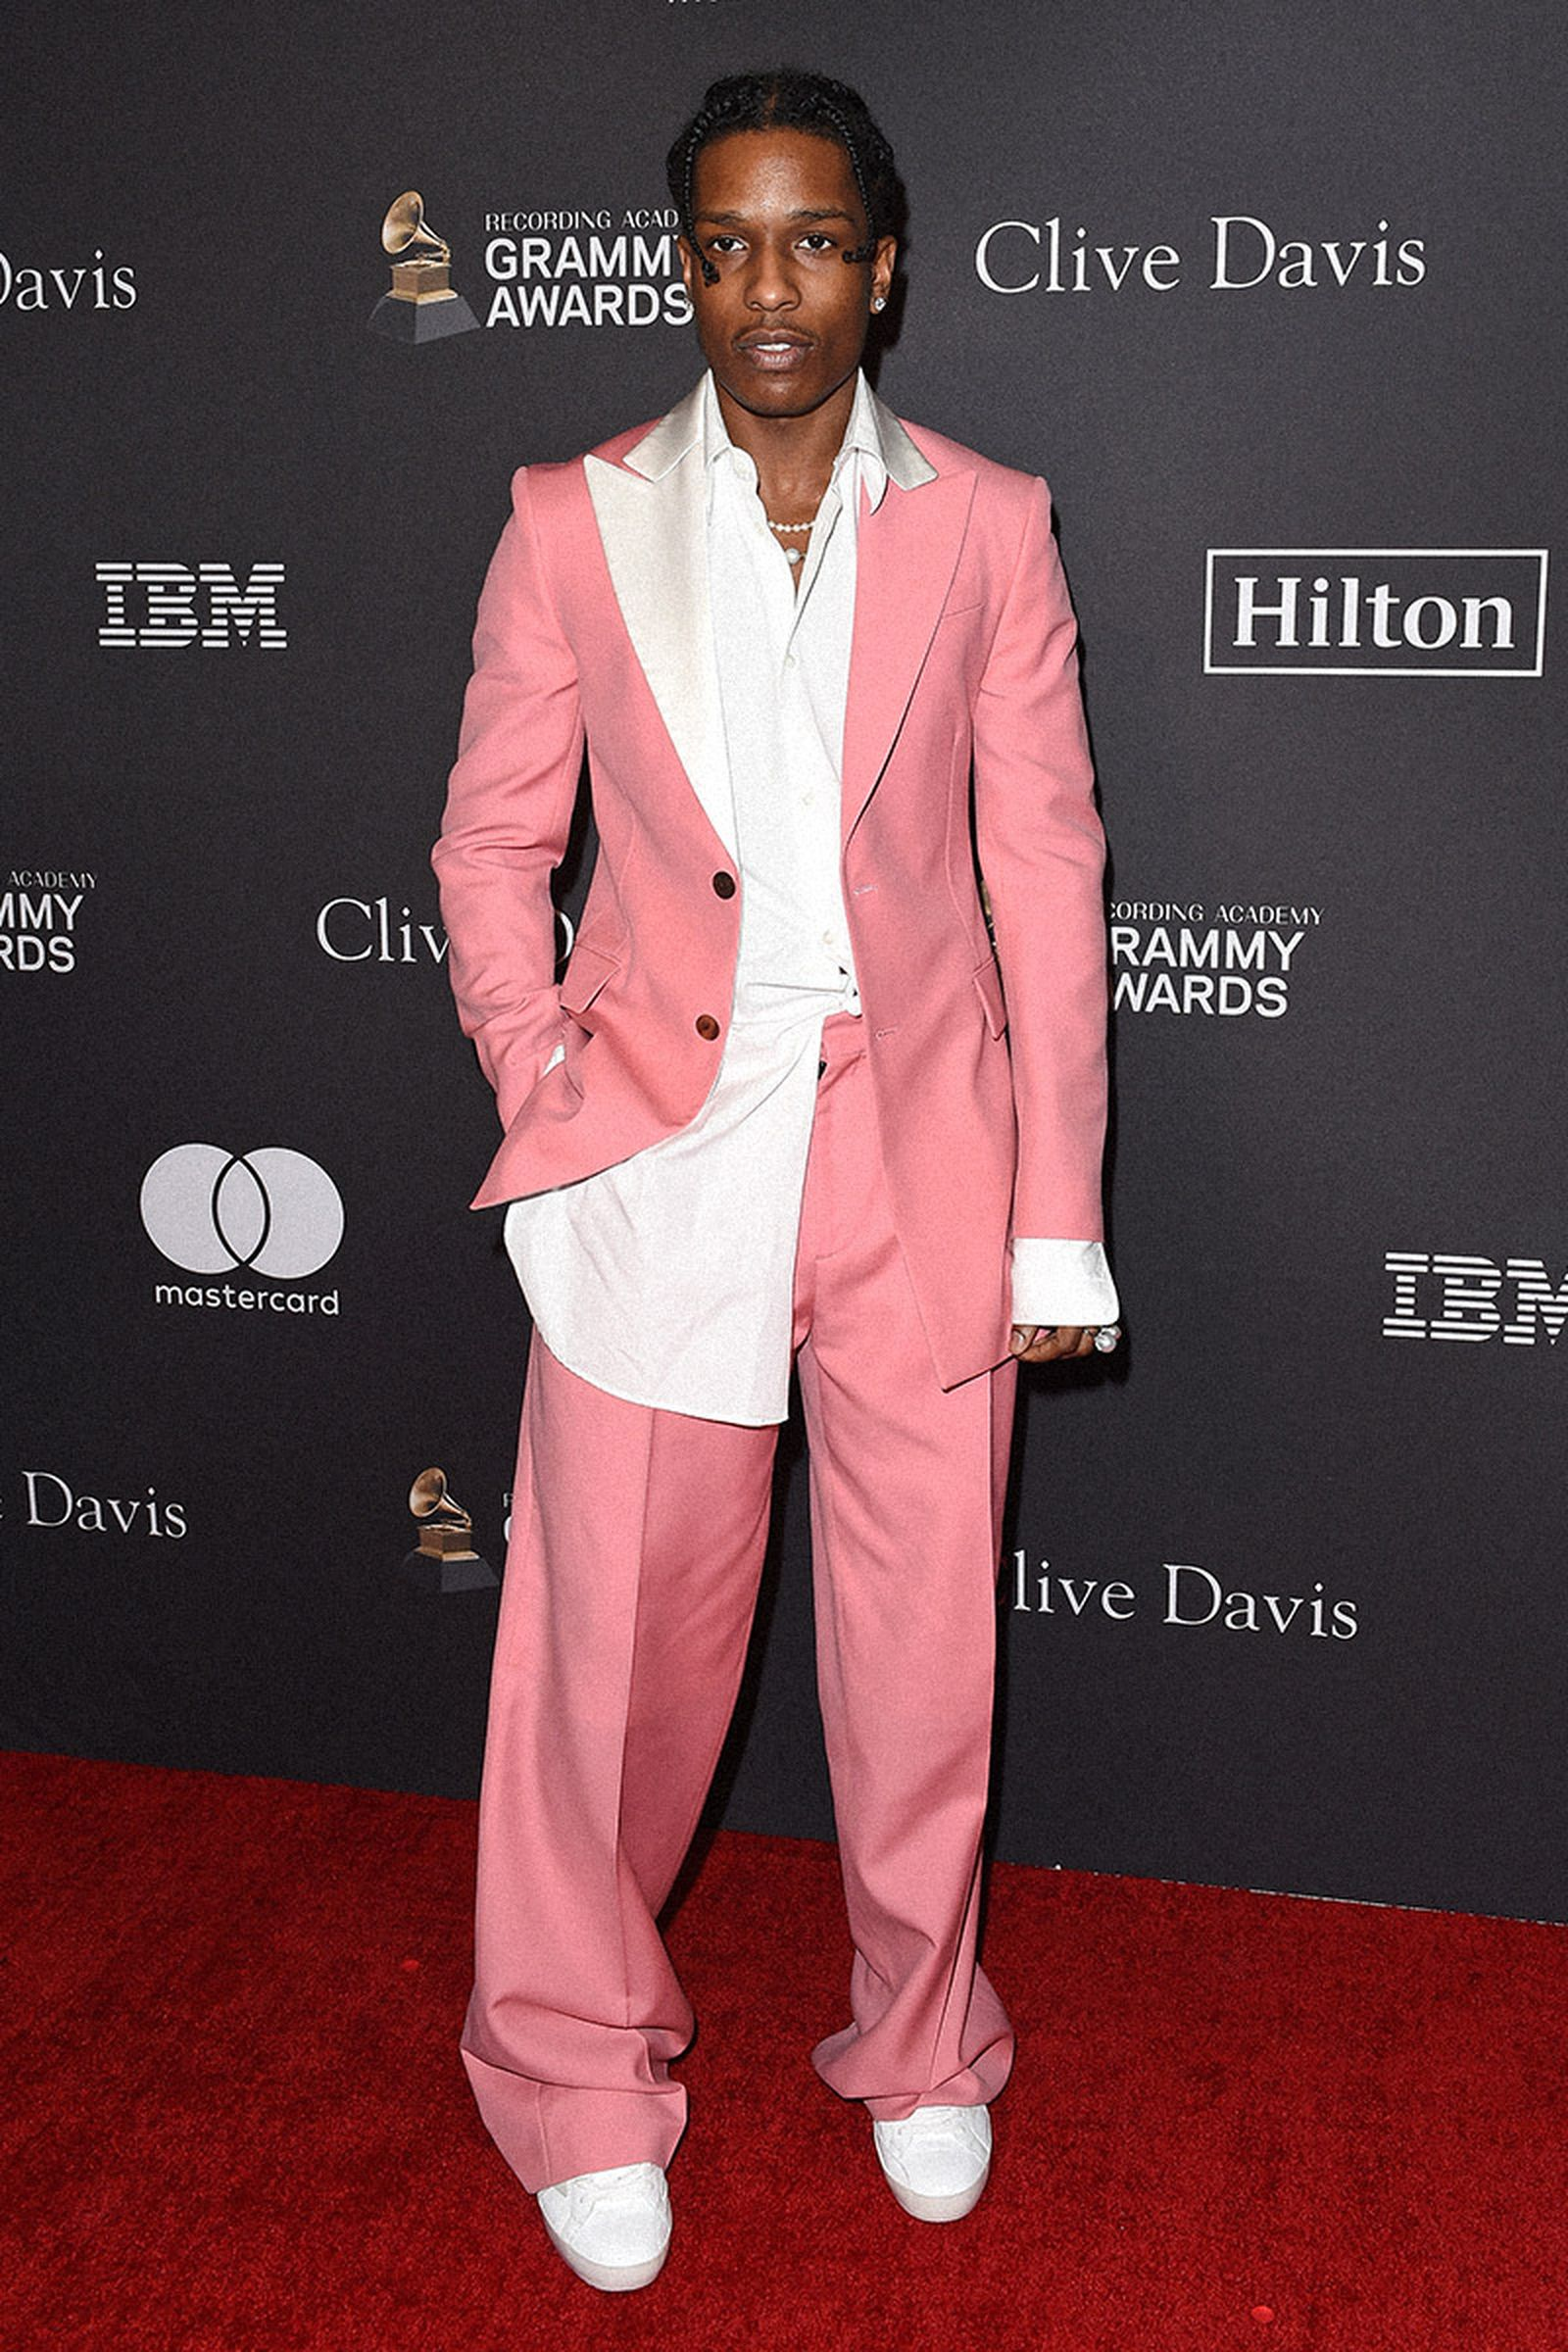 A$AP Rocky's Red Carpet Looks Have Come A Long Way